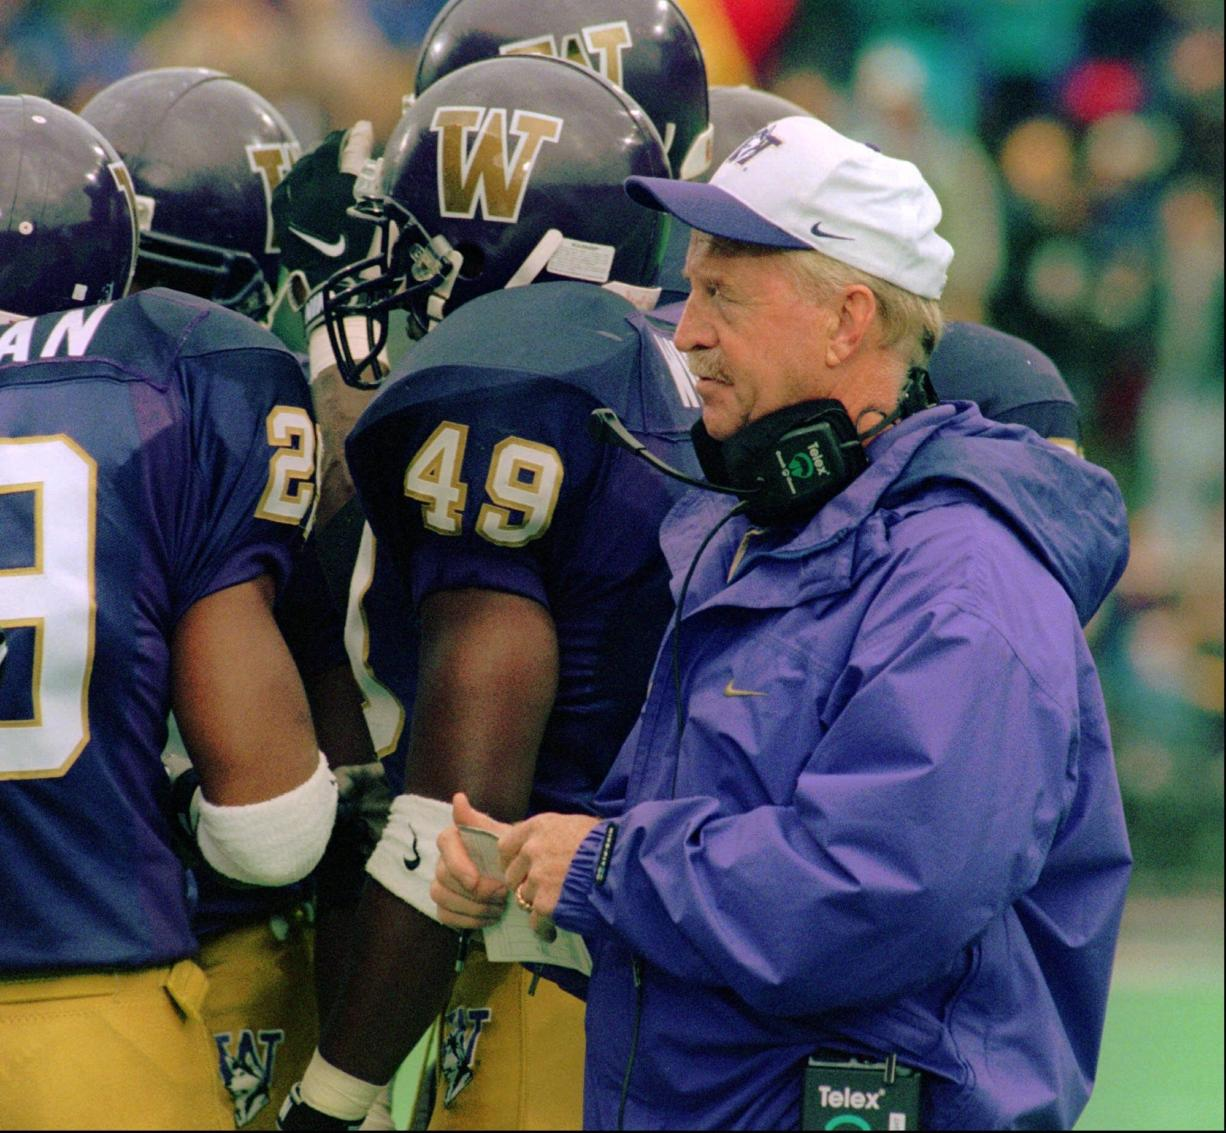 Jim Lambright led the Washington Huskies to the Pac-10 championship in 1995.